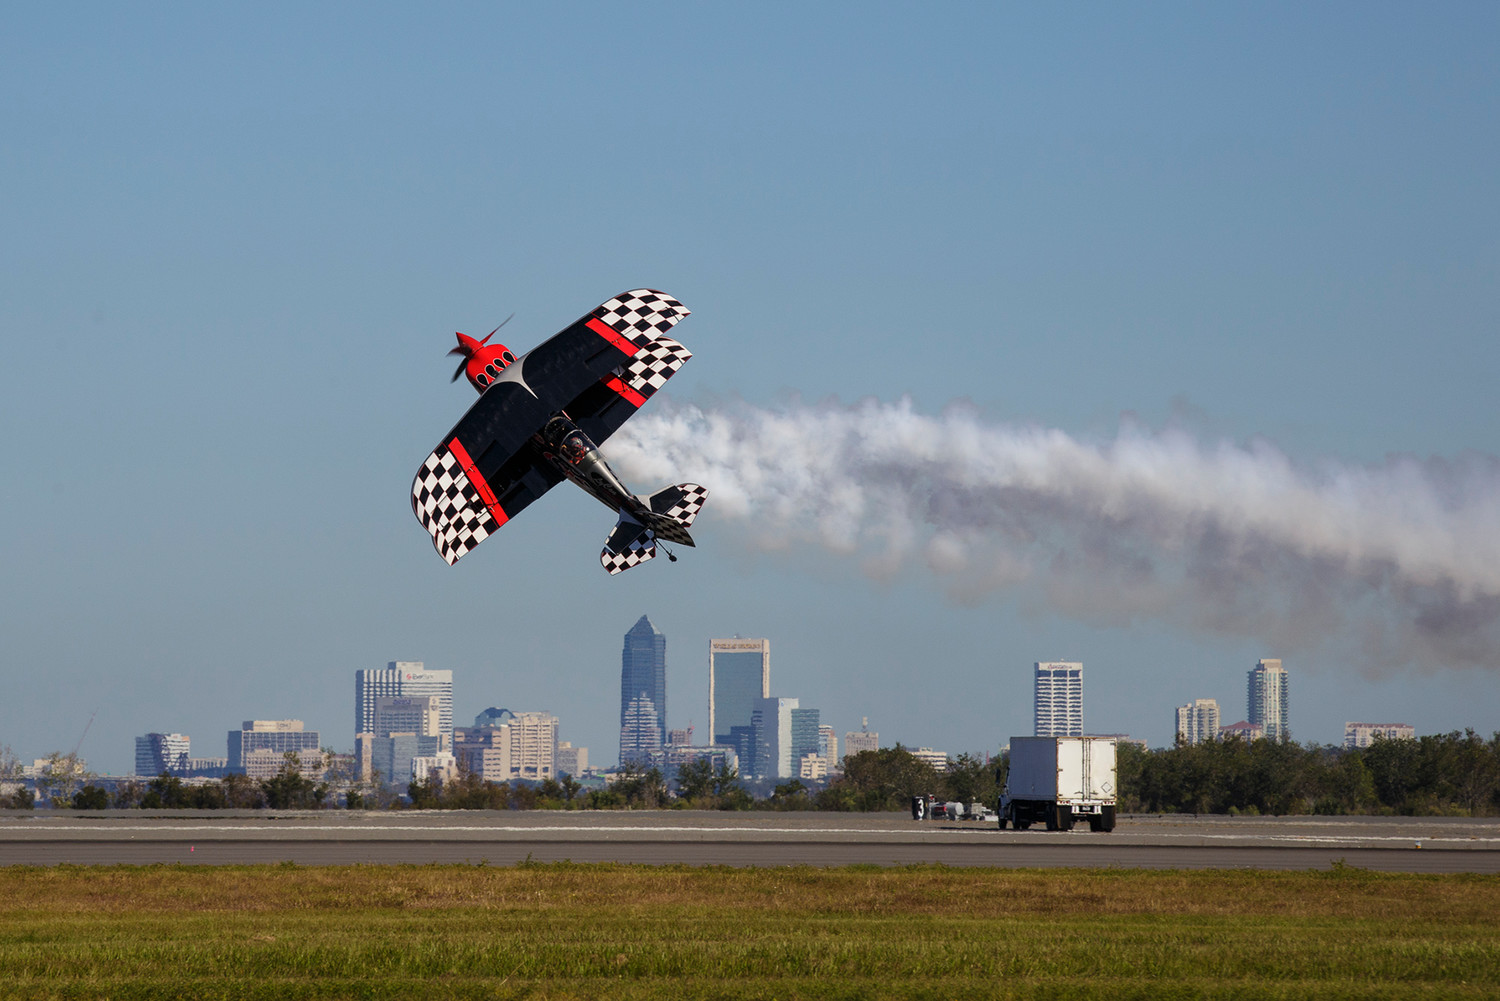 Stunt pilot Skip Stewart flies sideways across the image of Downtown Jacksonville on the runway at Naval Air Station Jacksonville while rehearsing his routine before the start of the base's air show.